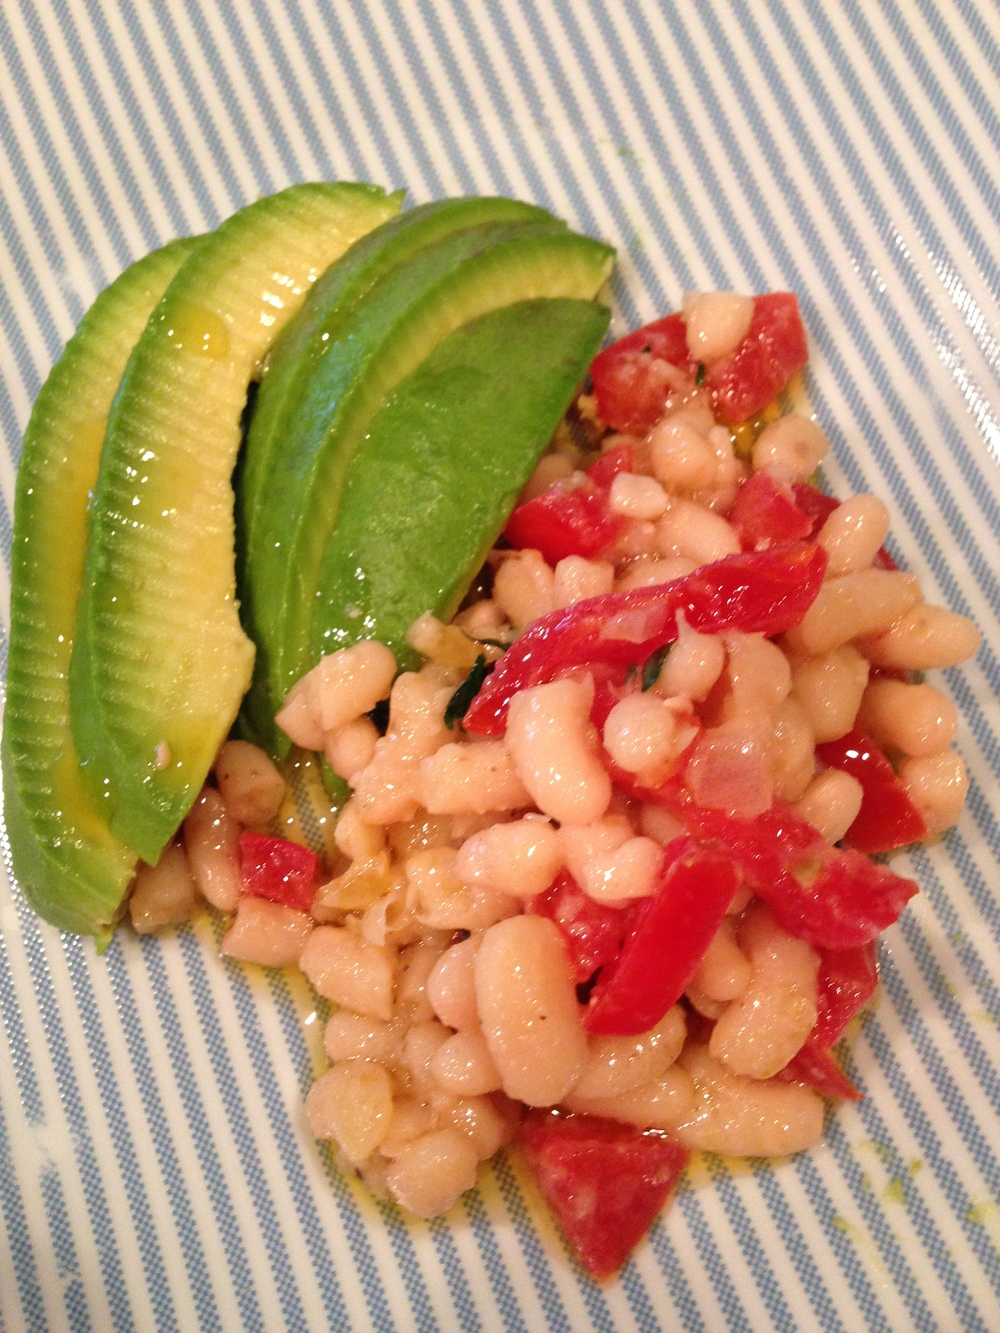 White beans & avocado